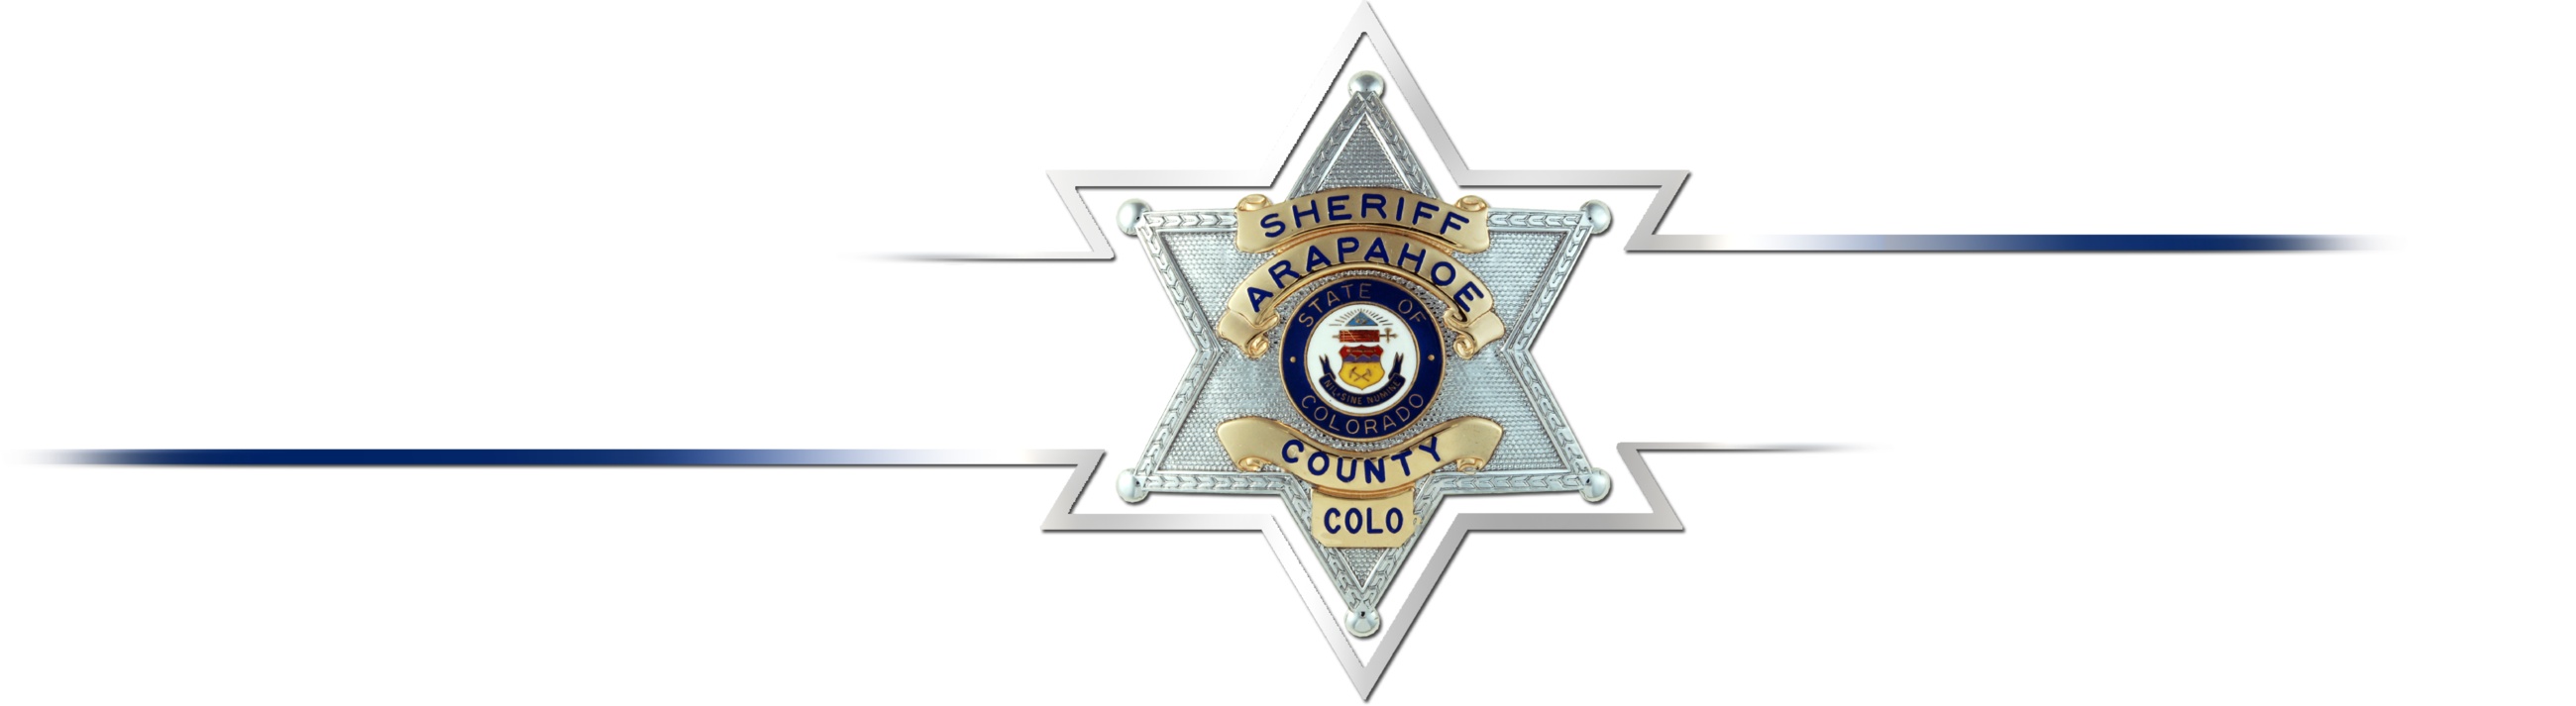 Arapahoe Sheriff wording with badge